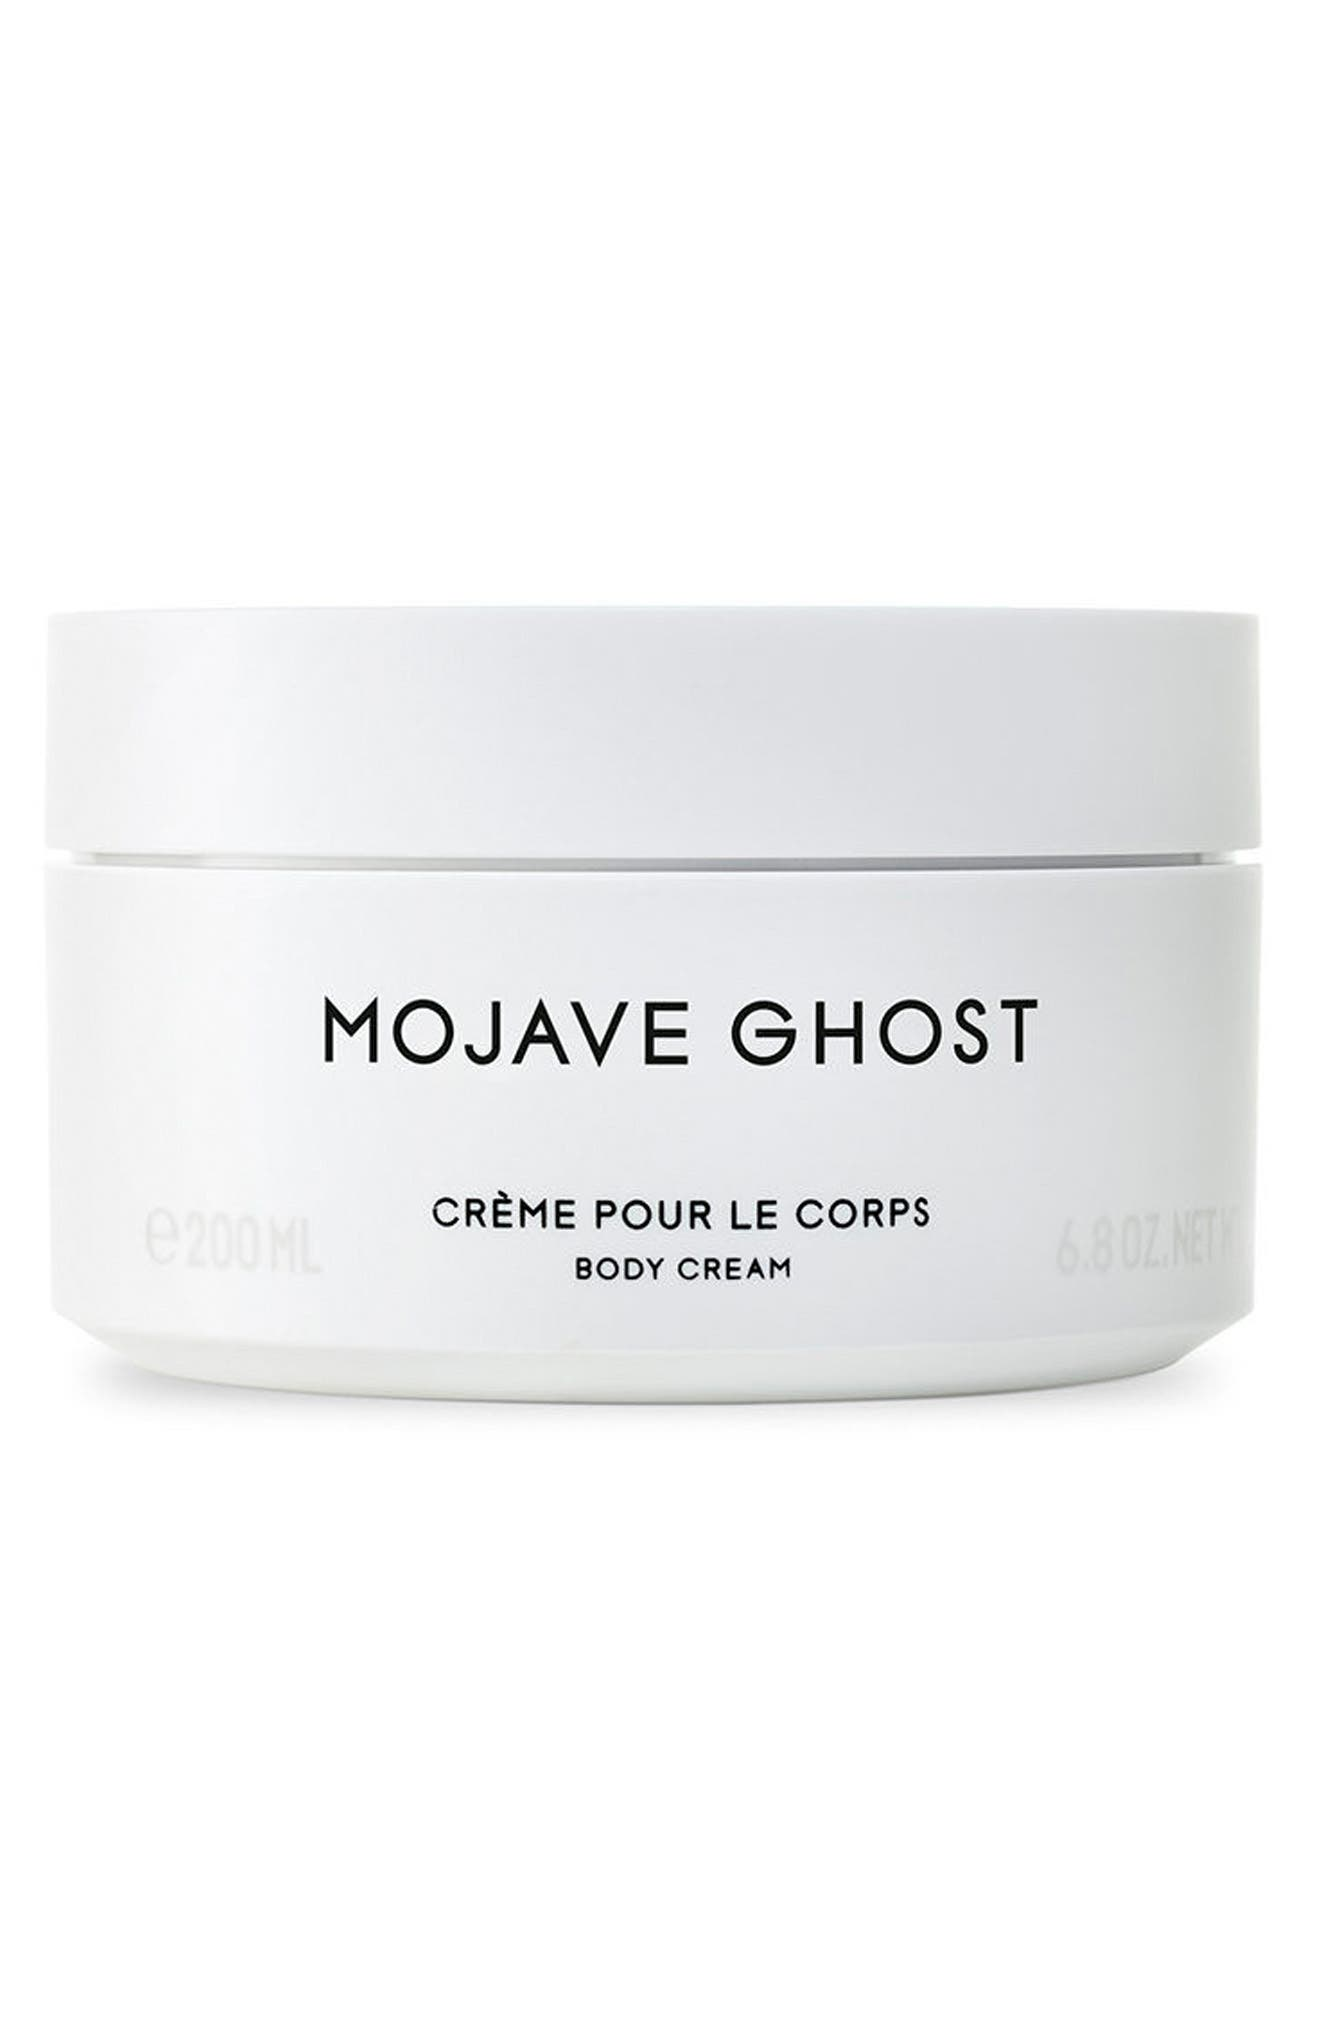 Mojave Ghost Body Cream,                             Main thumbnail 1, color,                             NO COLOR